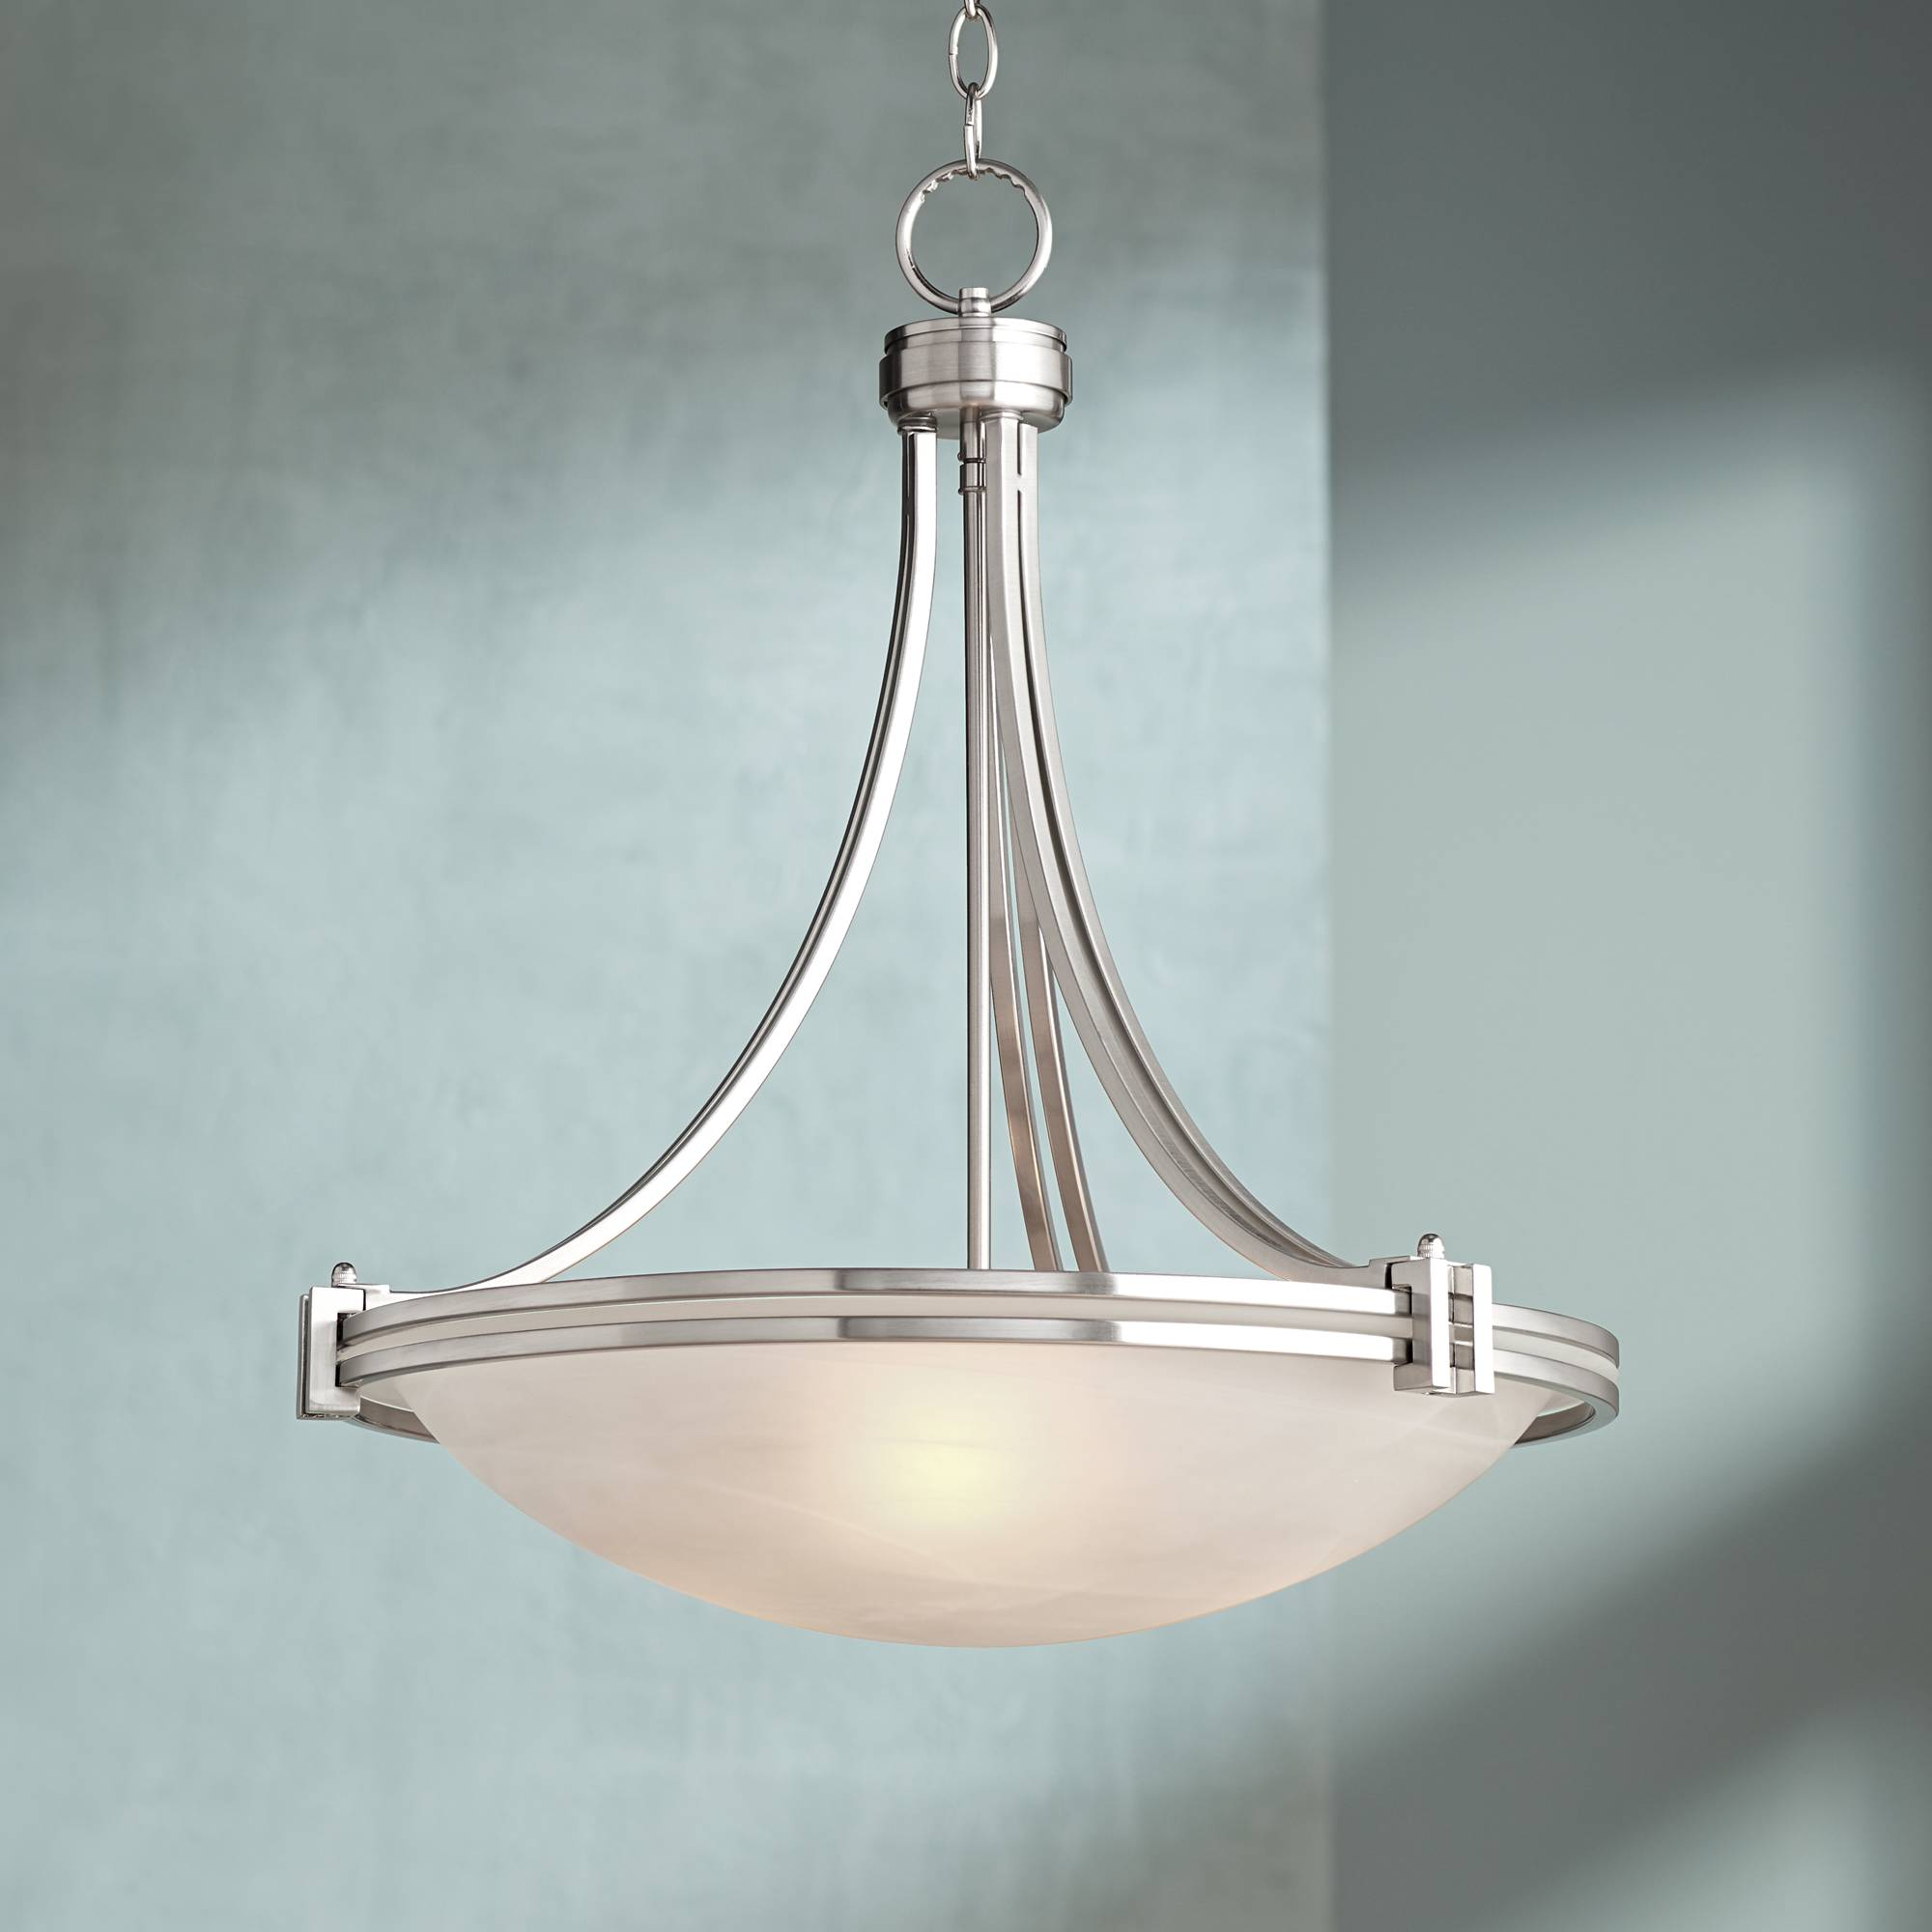 Possini euro design deco nickel 21 1 2 wide pendant light